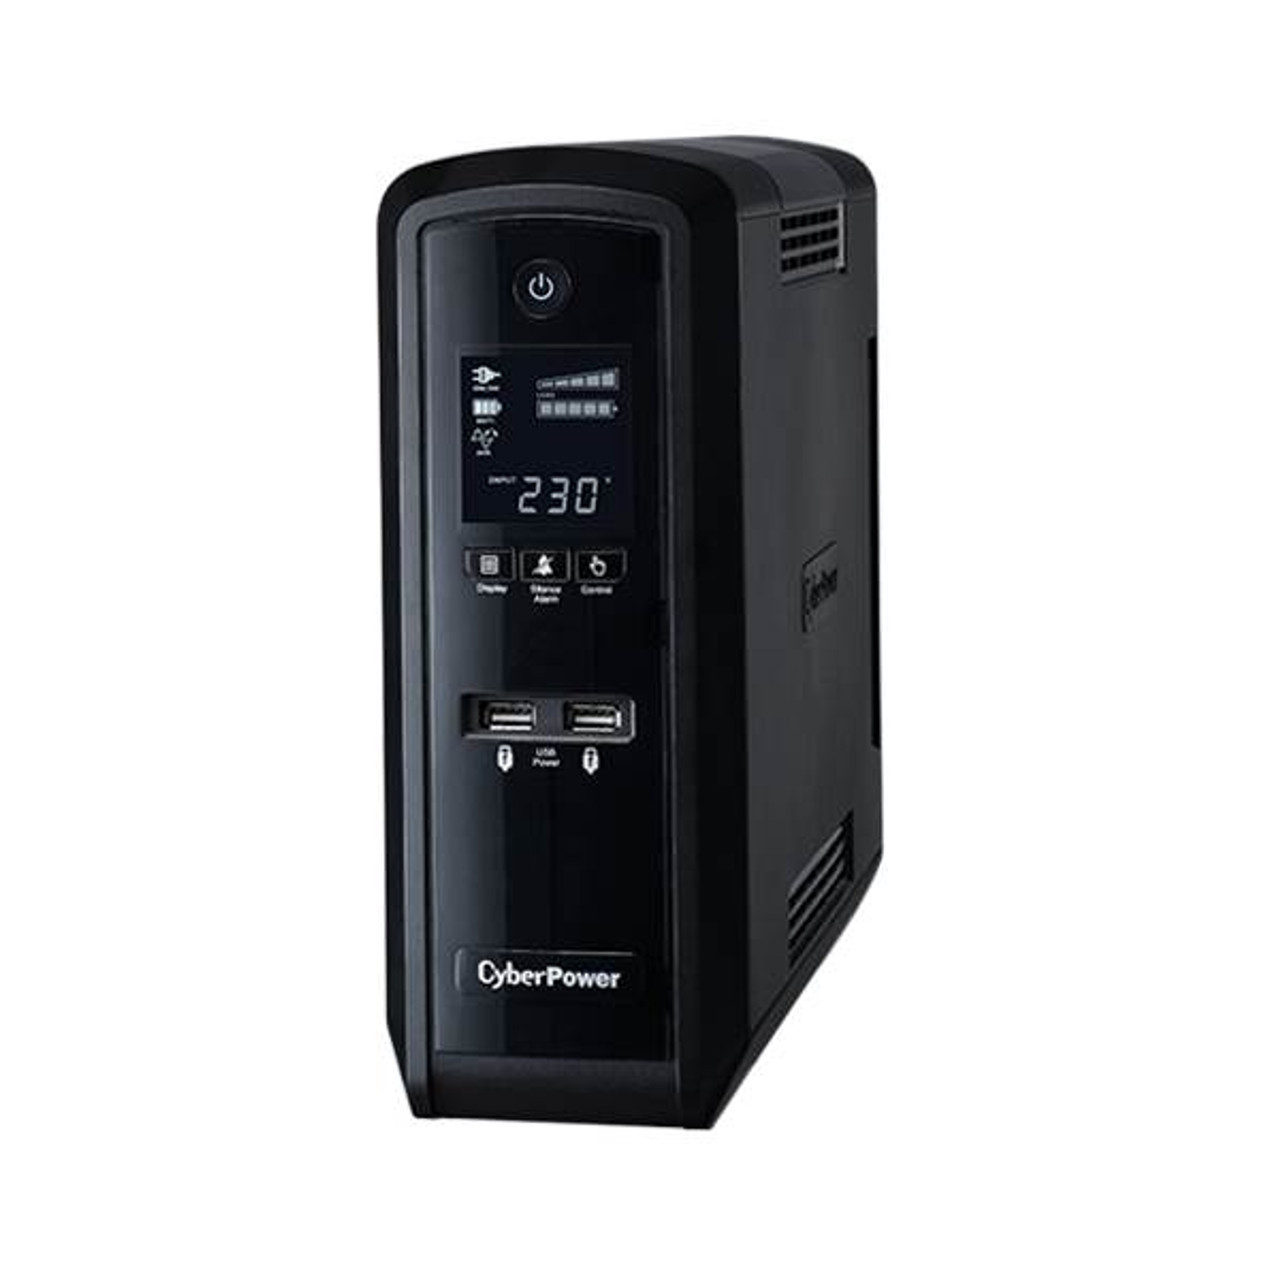 Image for CyberPower CP1500EPFCLCDa-AU PFC Sinewave 1500VA / 900W UPS Tower with LCD CX Computer Superstore